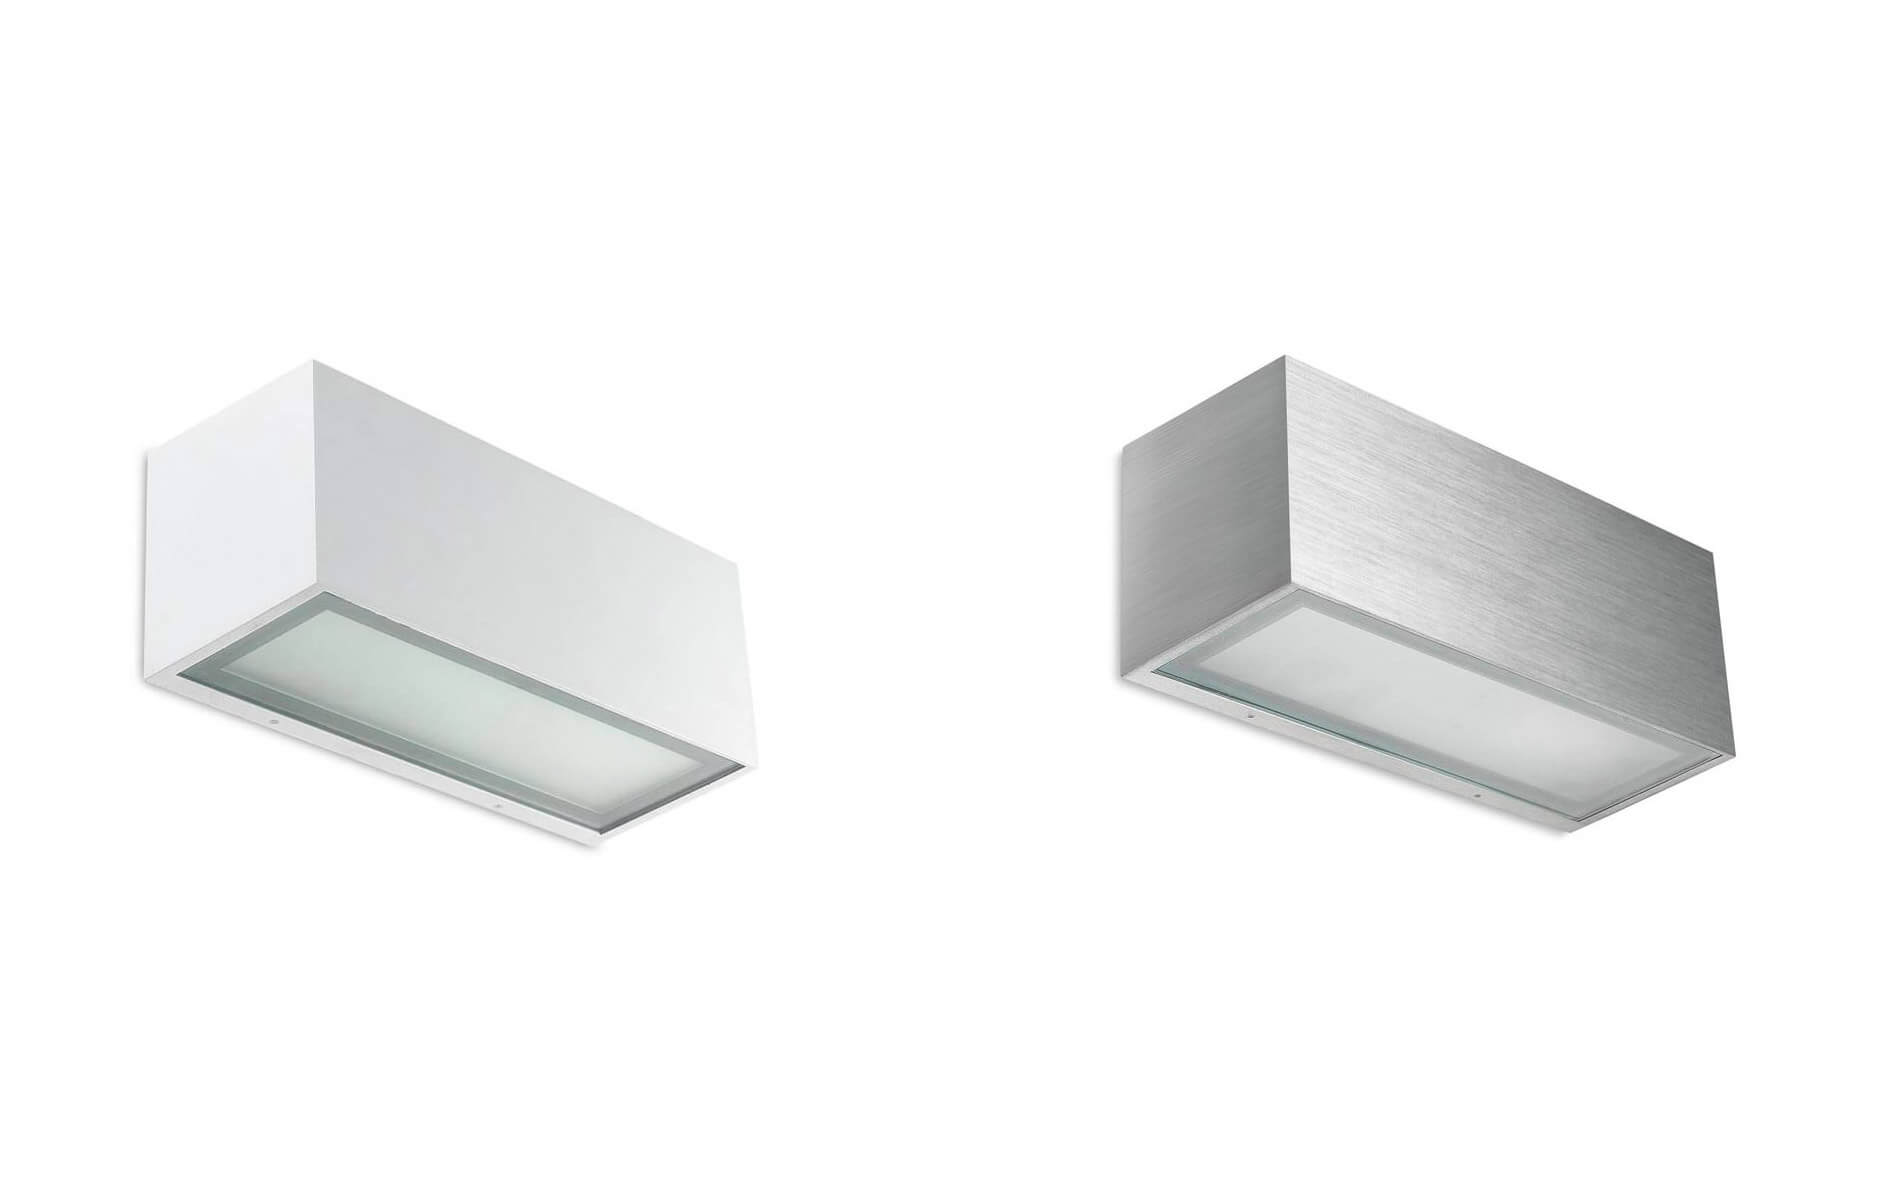 More information of Leds C4 LIA wall lamp